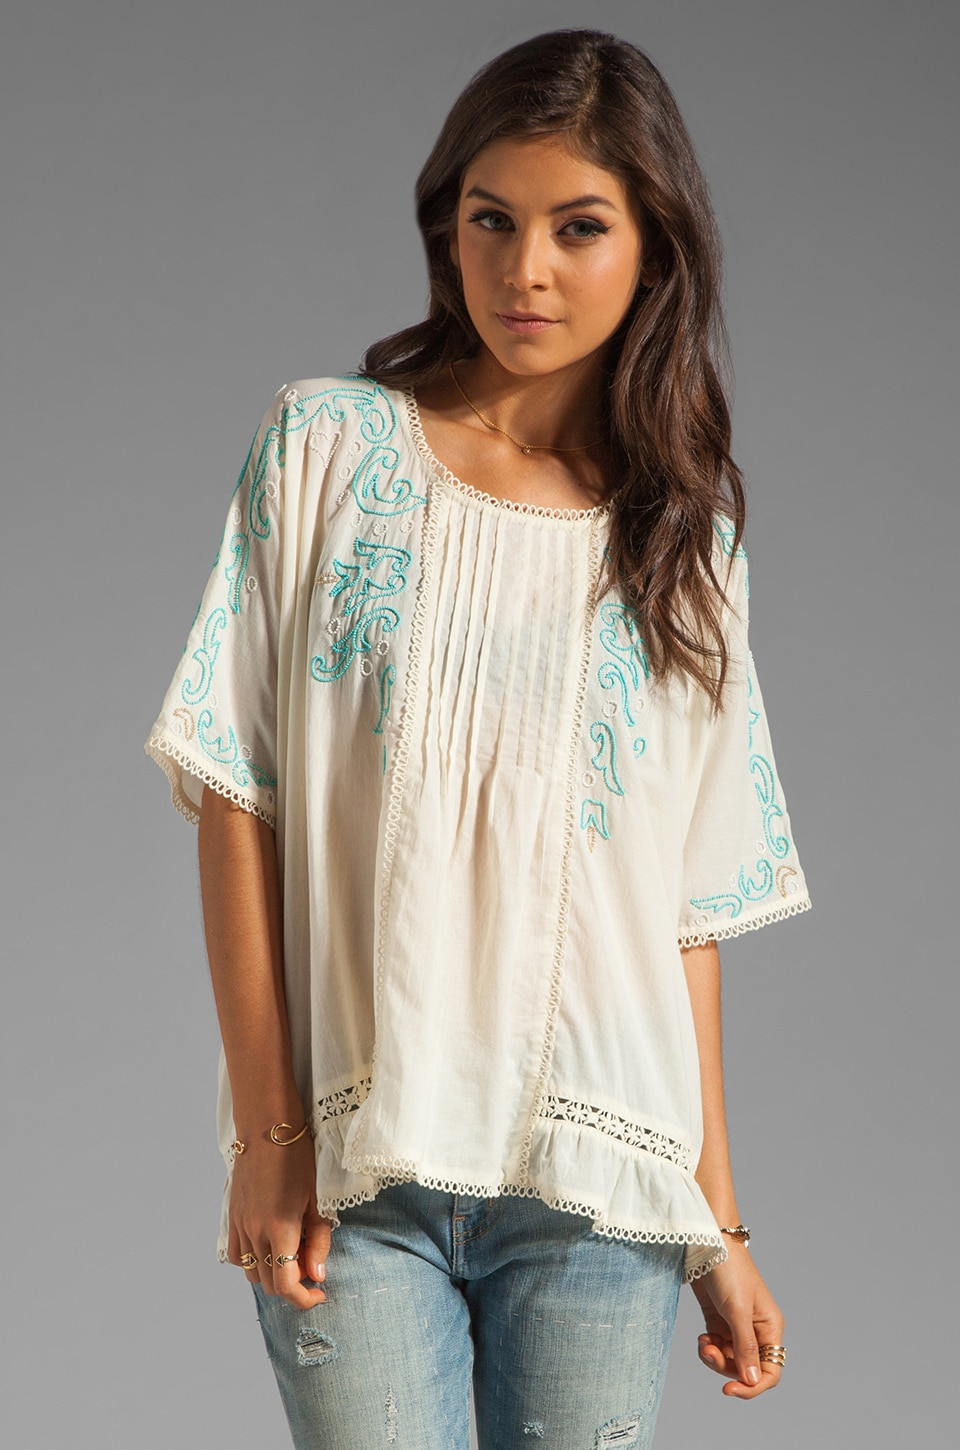 Anna Sui Seed Beads On Voile Top in Cream